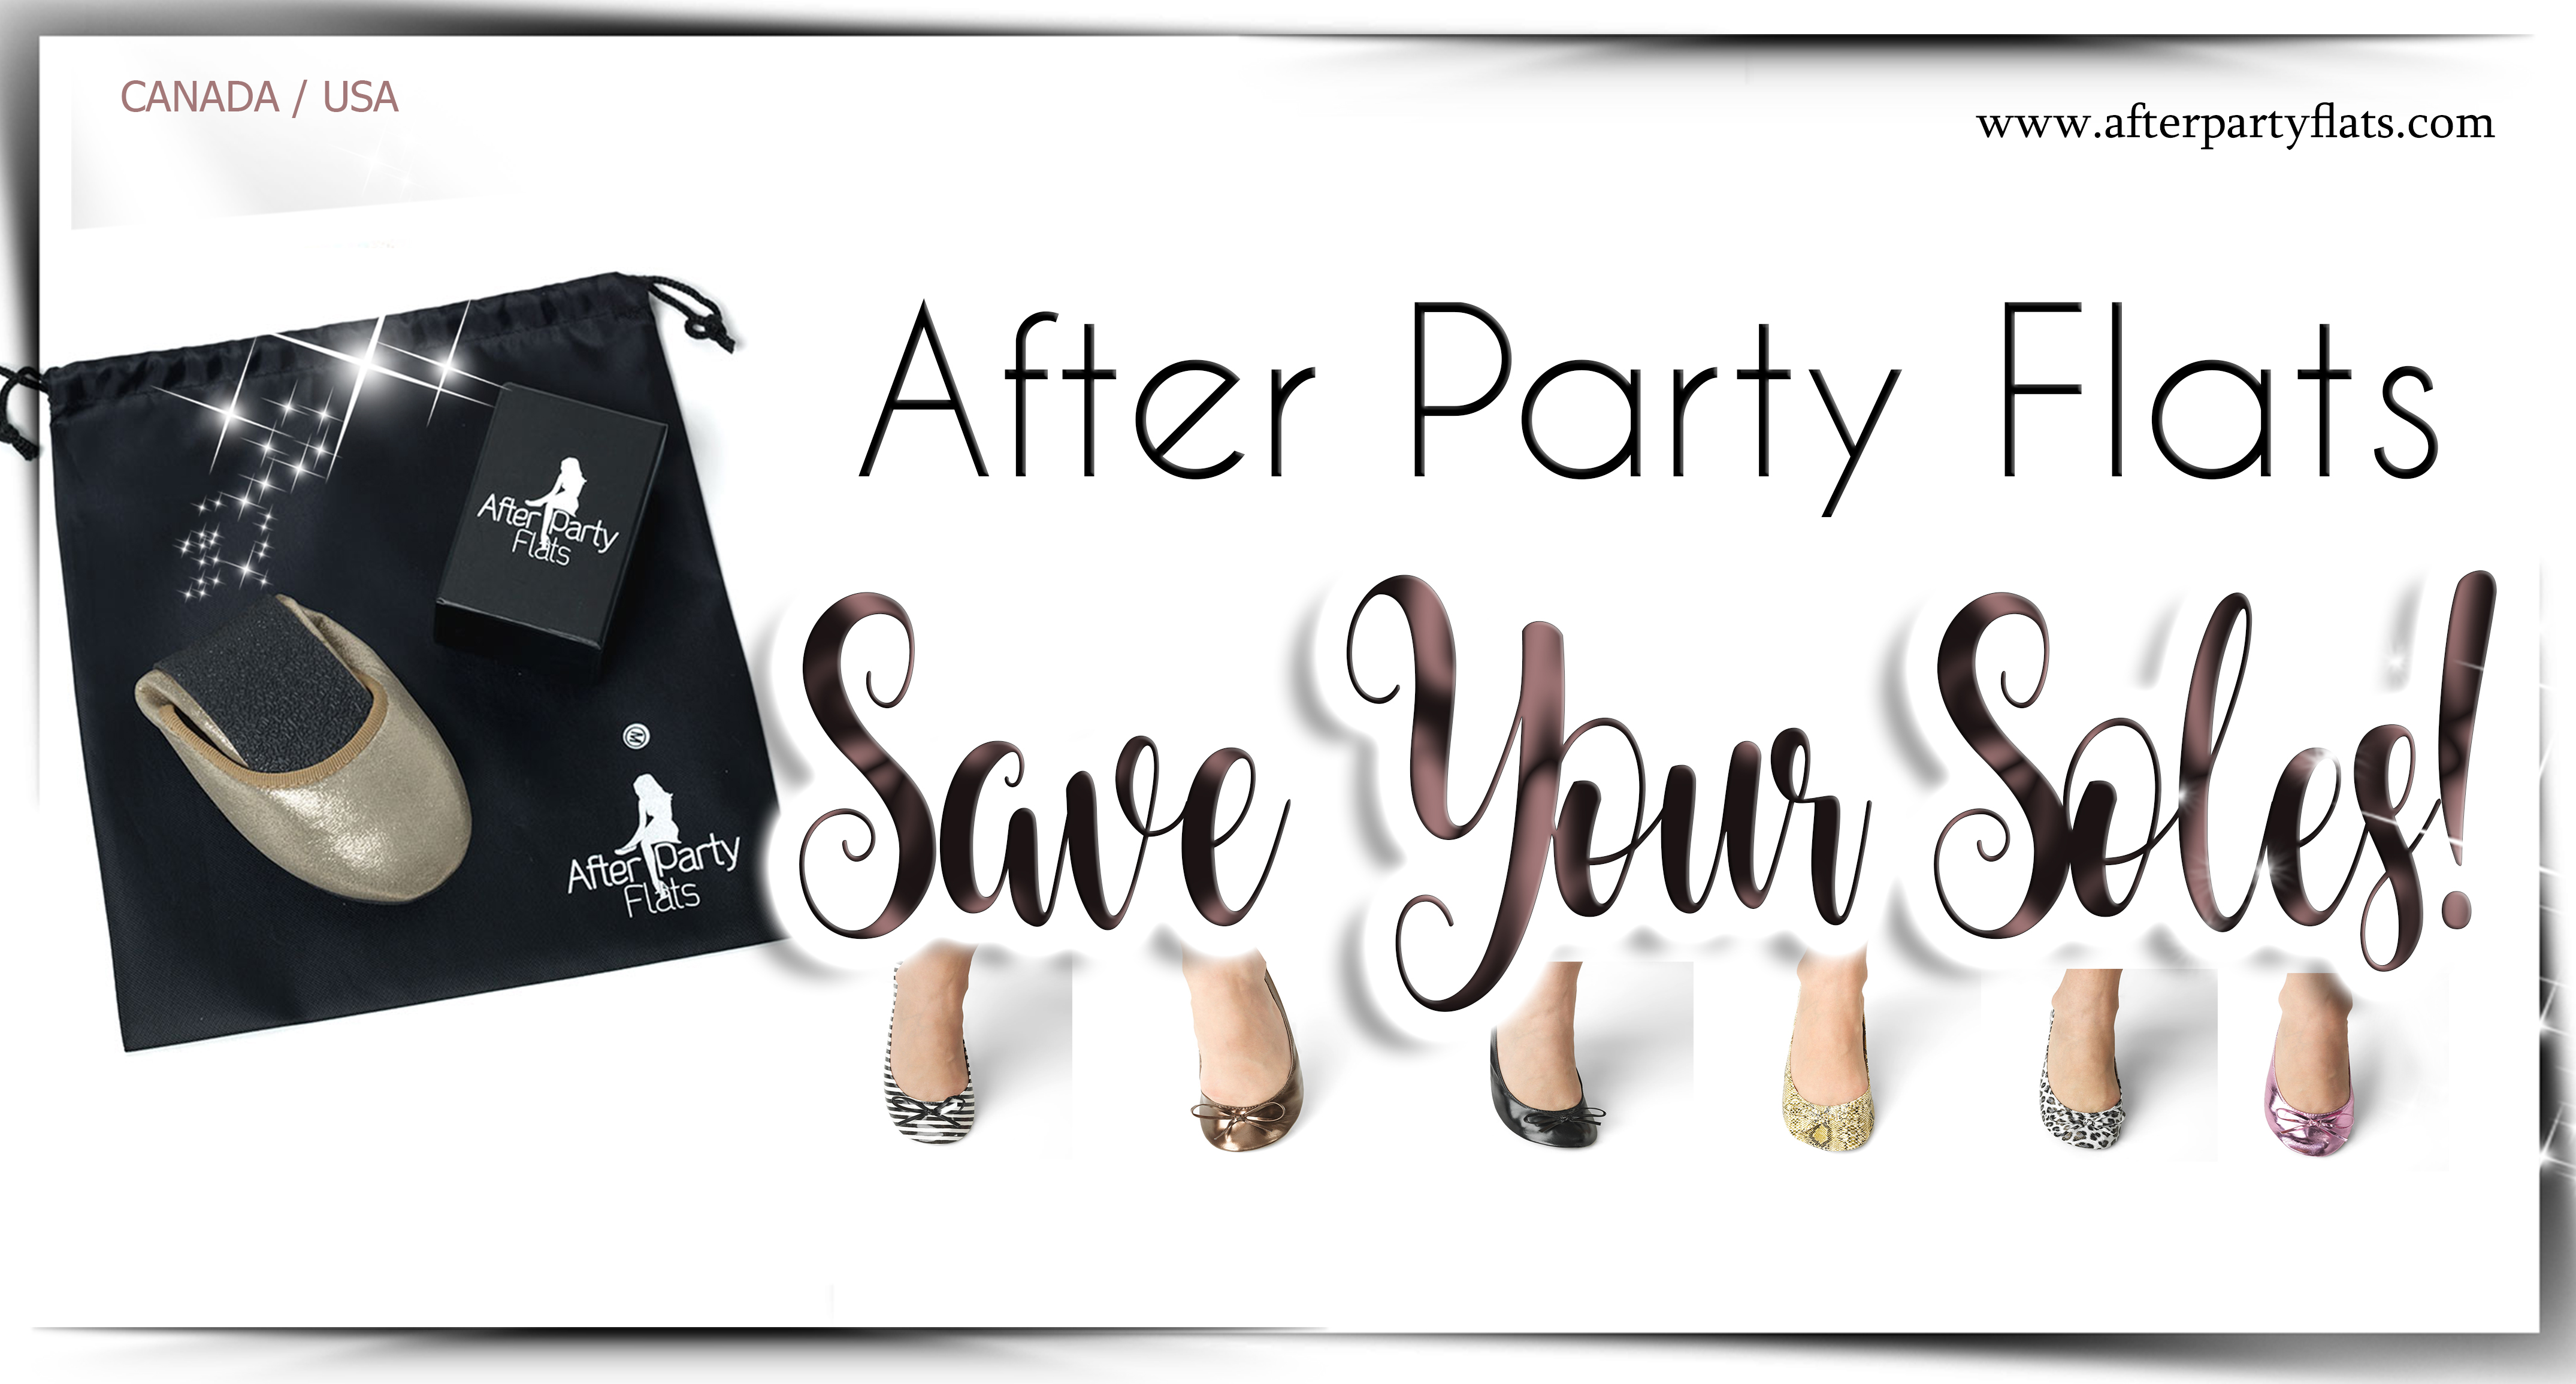 AFTER PARTY FLATS FB COVER PLAIN SHOES 2